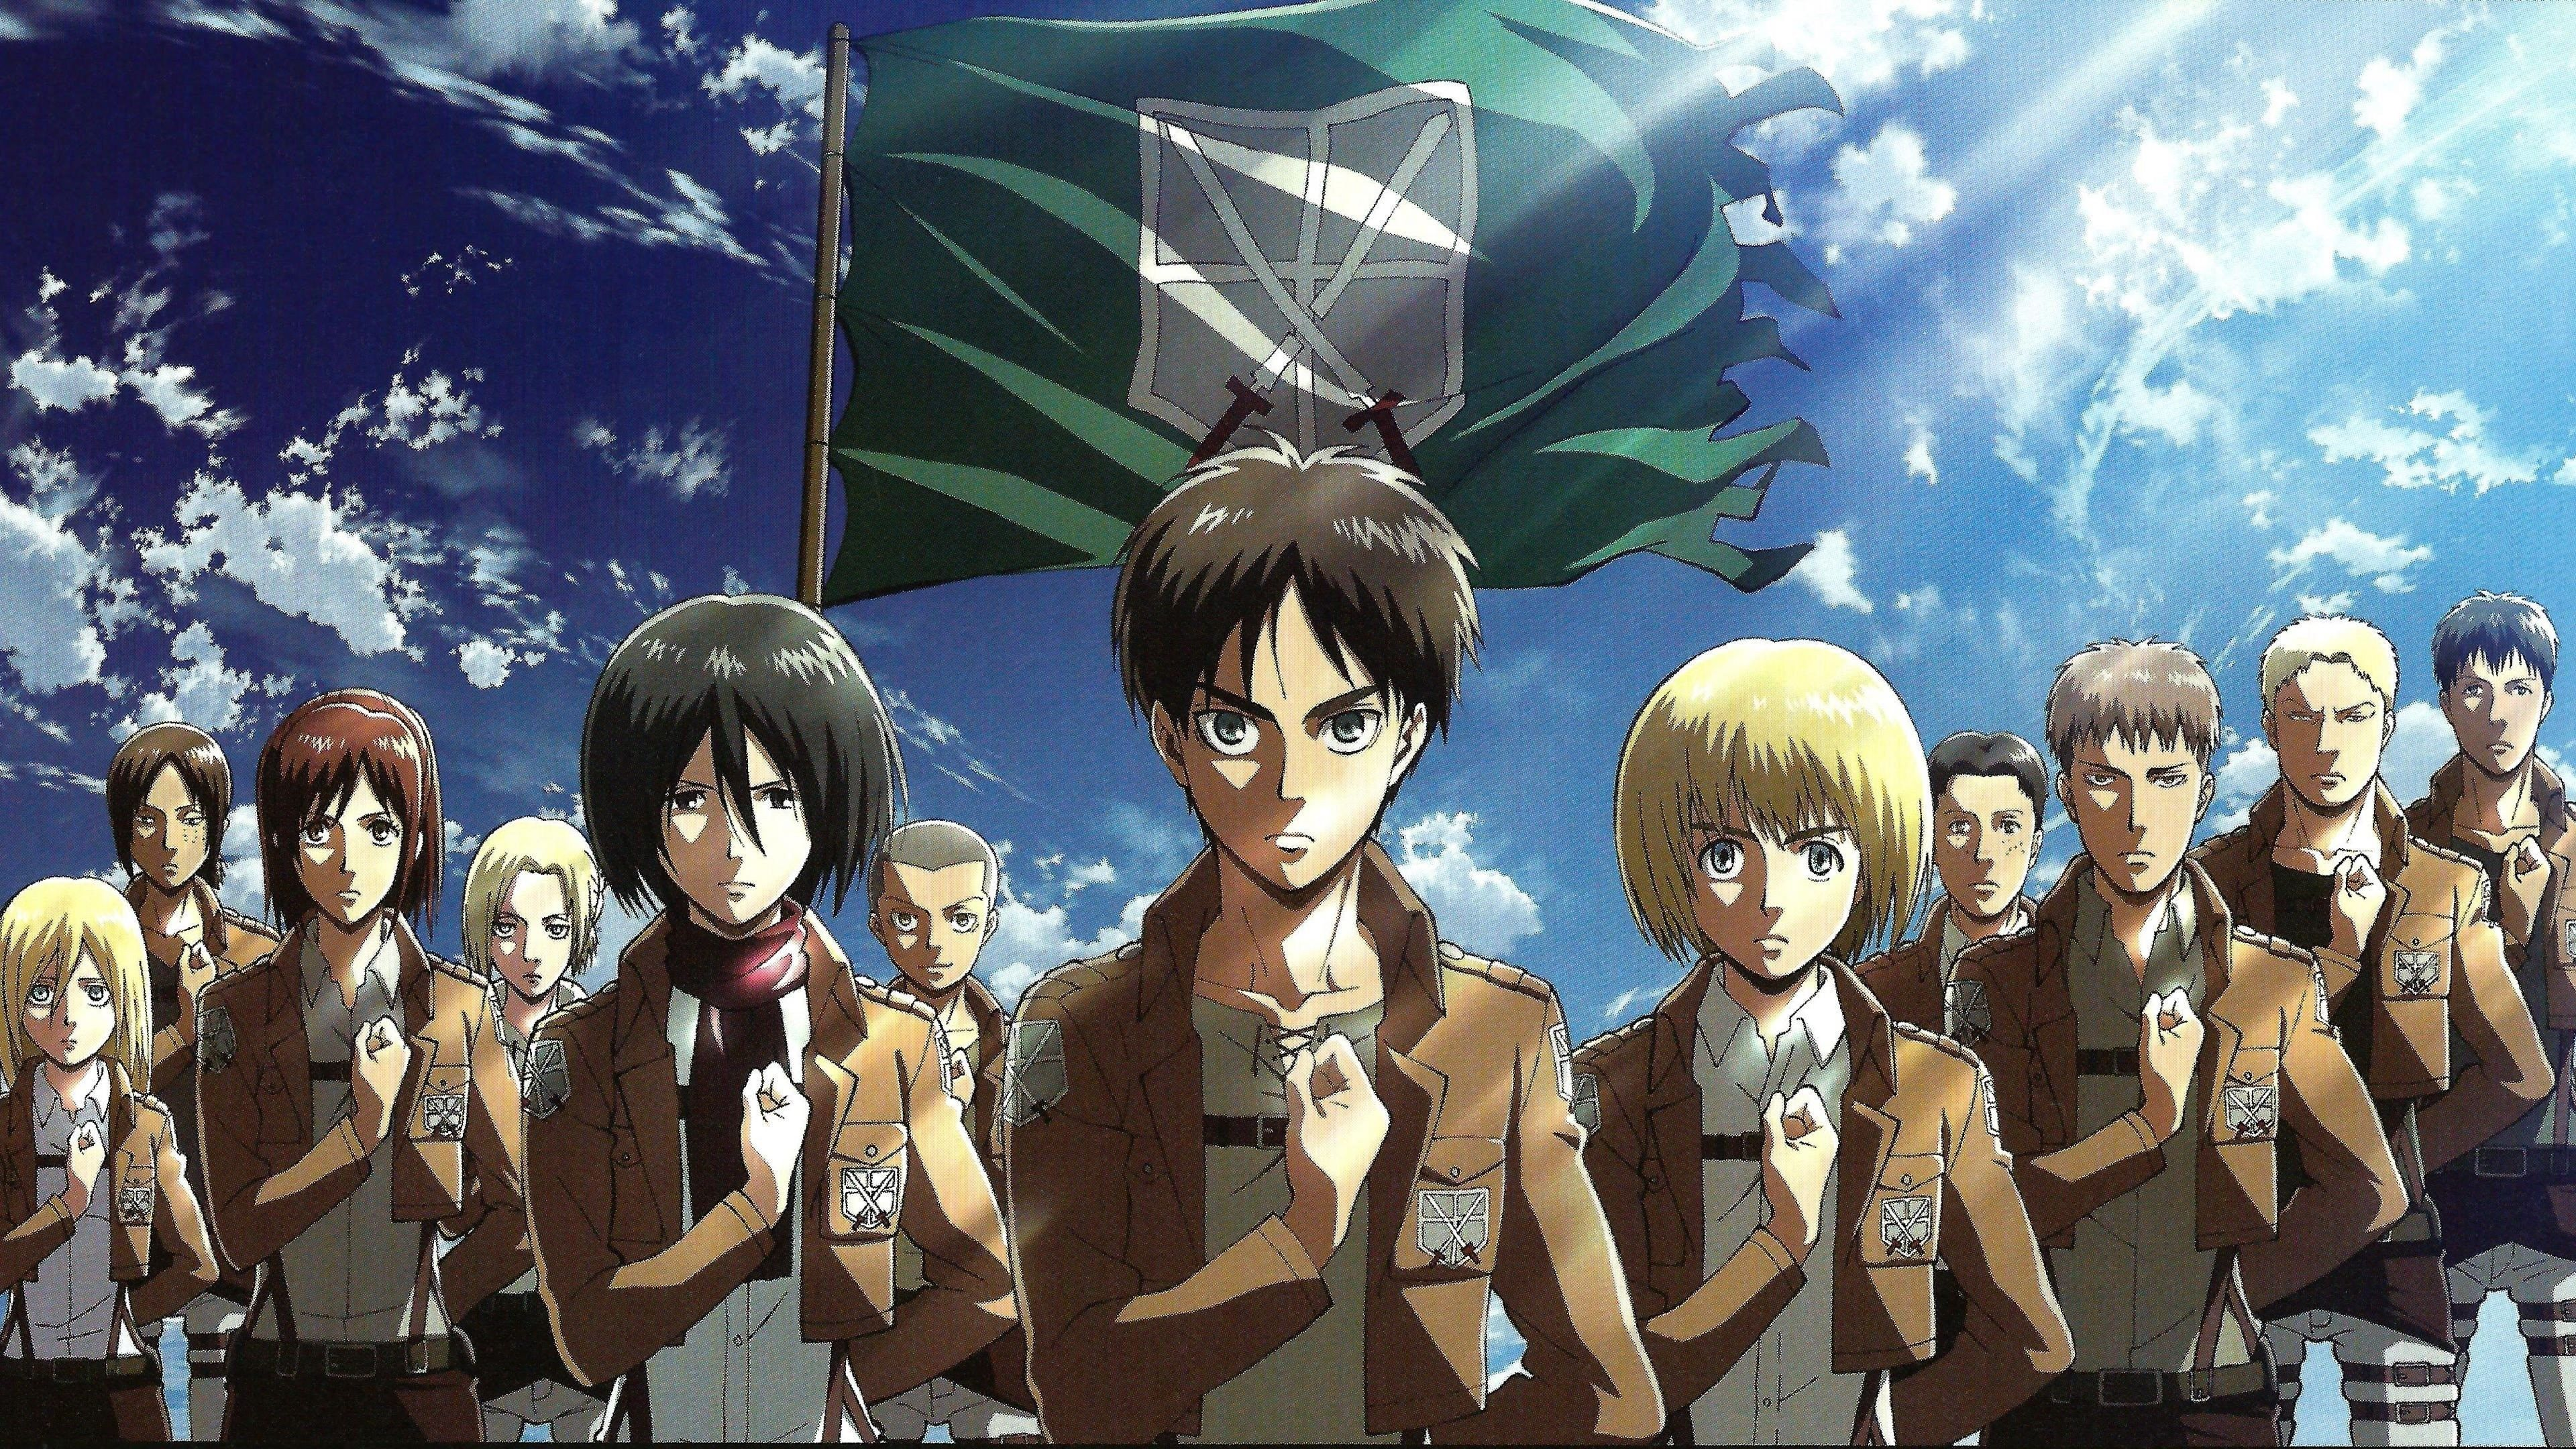 Hd Widescreen Wallpaper Attack On Titan Attack On Titan Anime Attack On Titan Season Attack On Titan